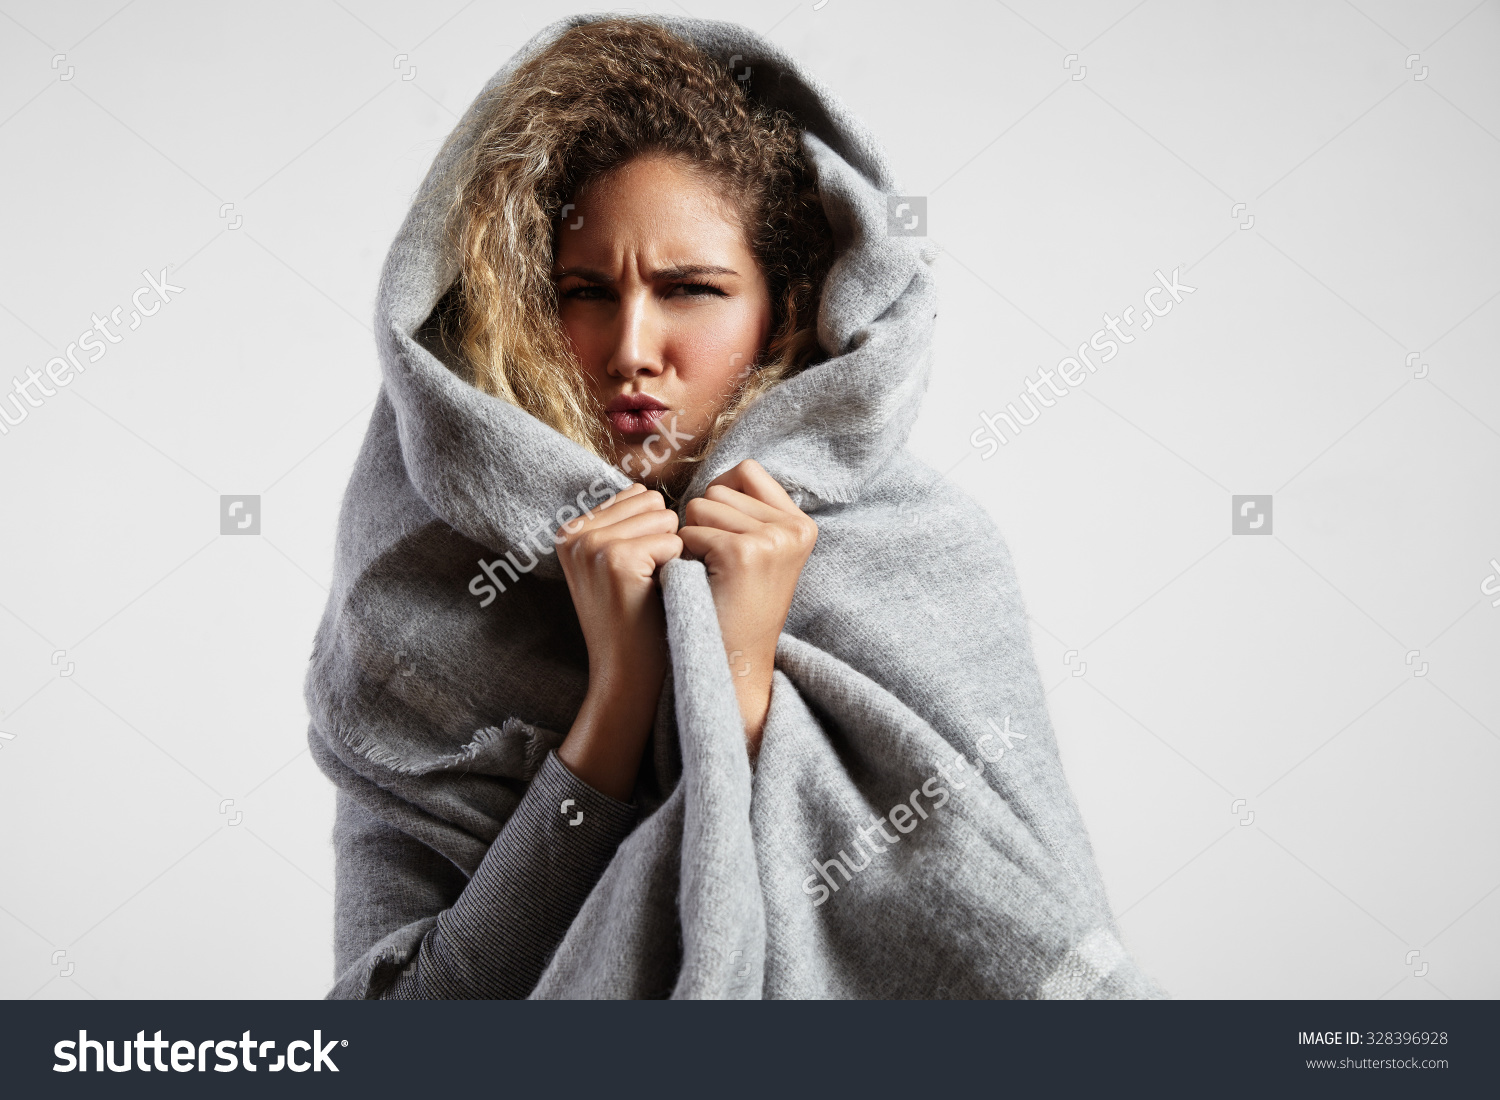 Woman Wrapped In Blanket Clipart.